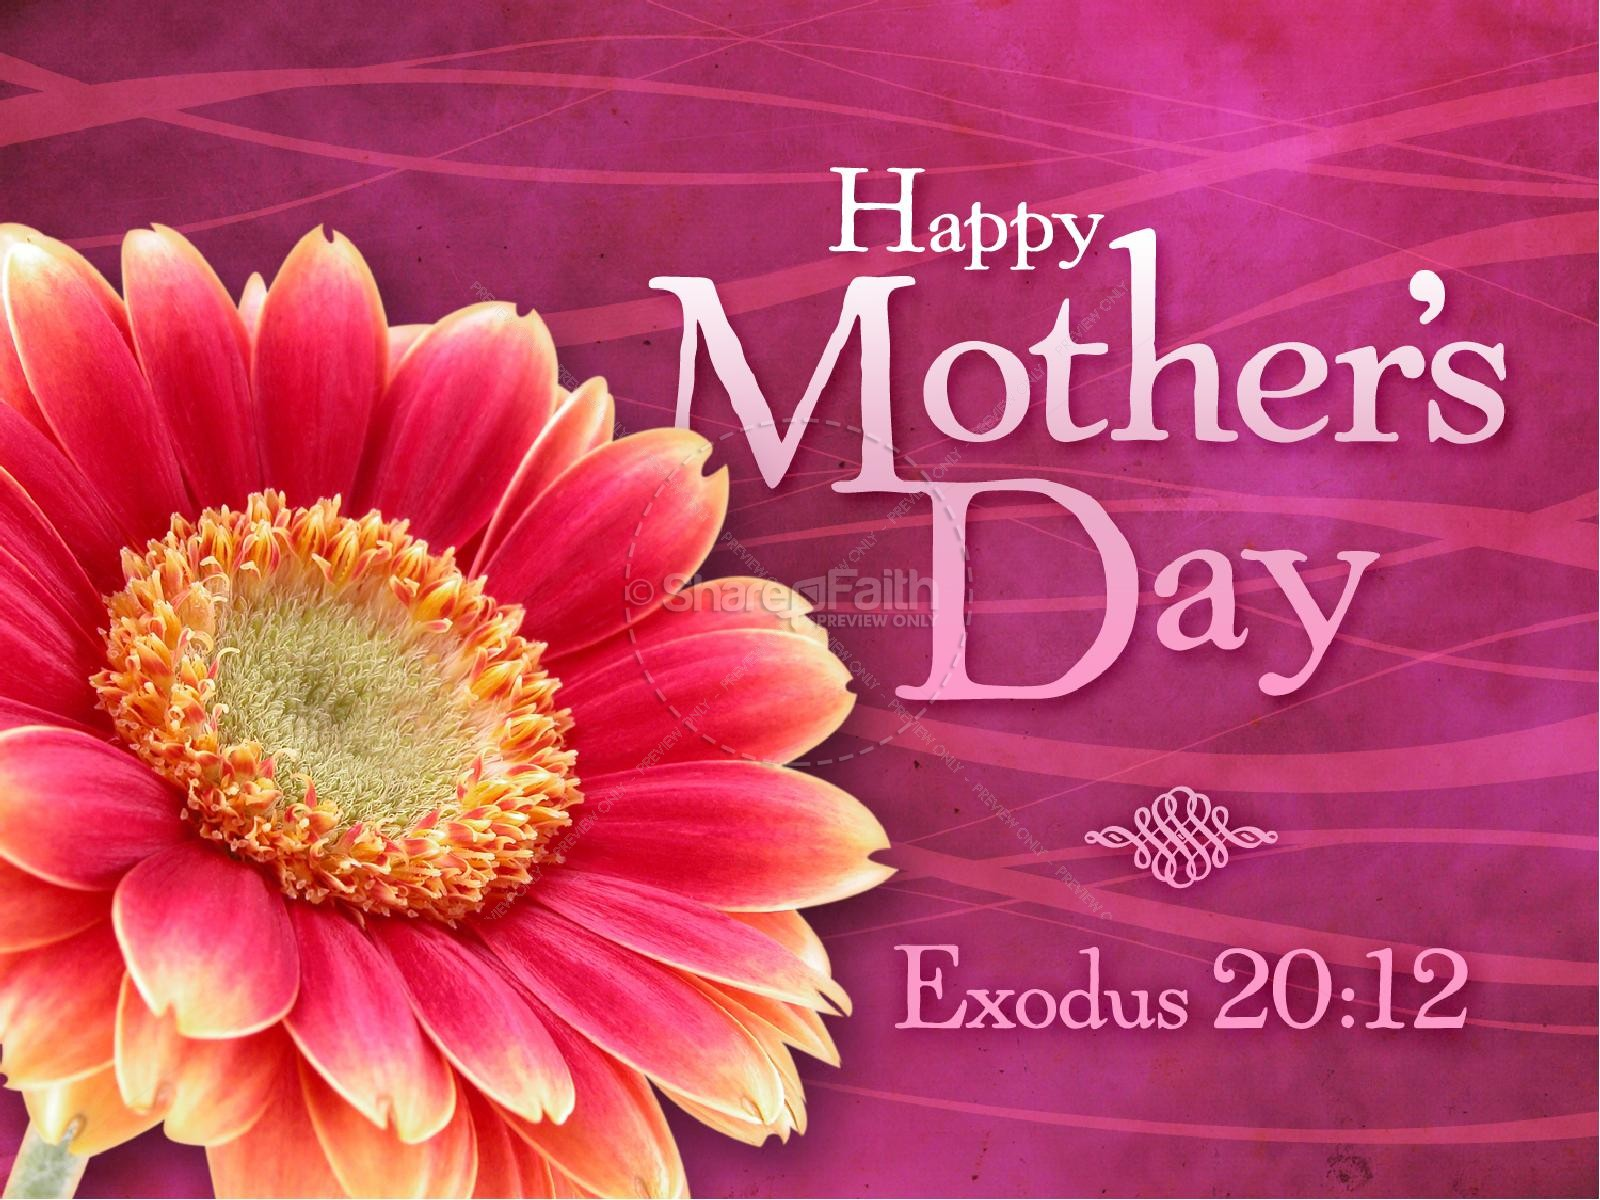 Pink Flower clipart mother's day Graphics Mothers Day bulletin day